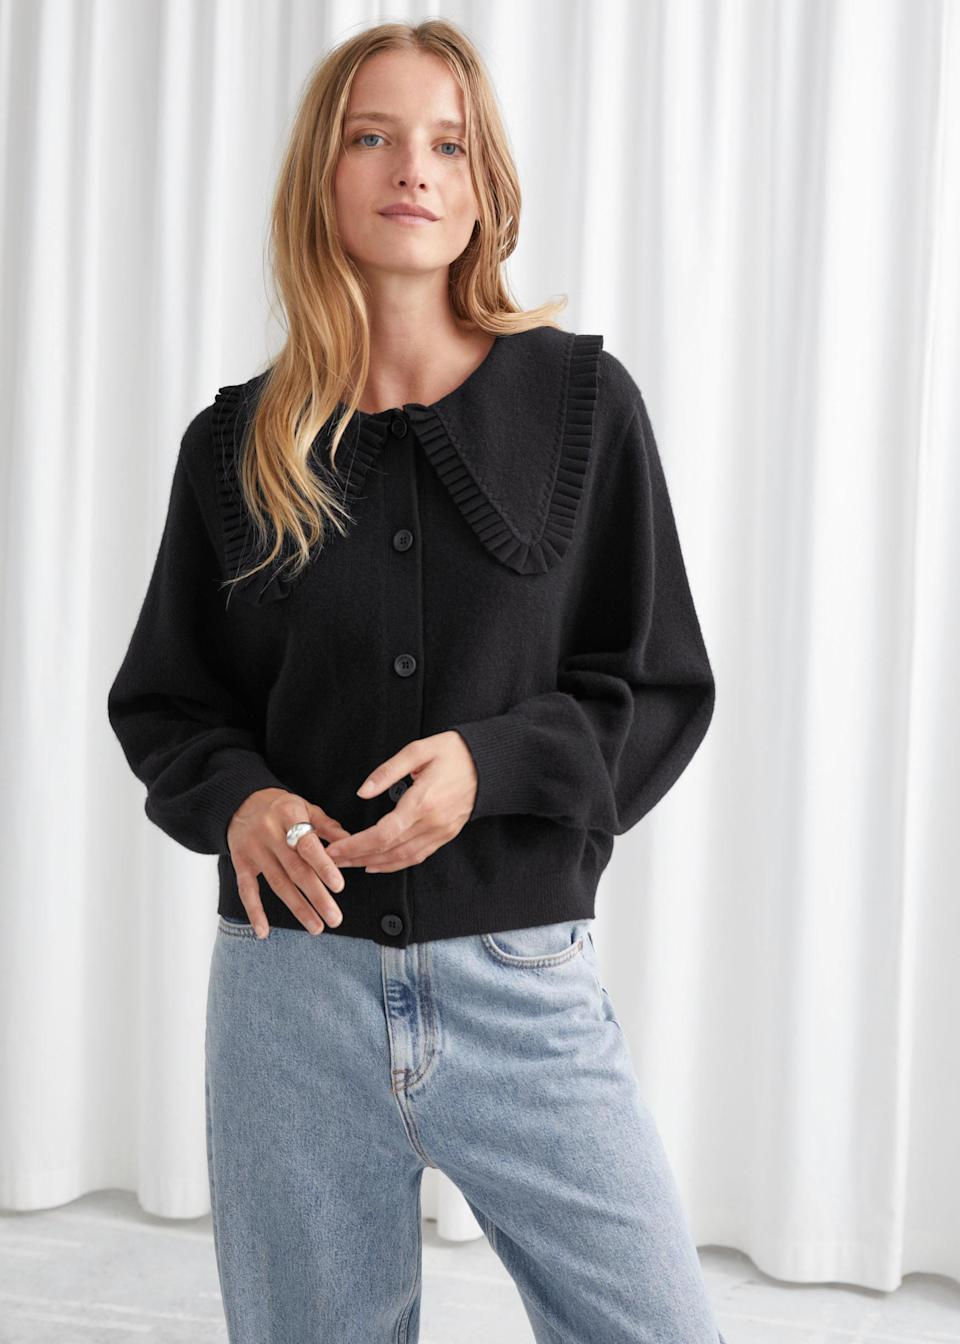 """Yes, you can stay low-key. $129, & Other Stories. <a href=""""https://www.stories.com/en_usd/clothing/knitwear/cardigans/product.statement-collar-wool-knit-cardigan-black.0902688001.html"""" rel=""""nofollow noopener"""" target=""""_blank"""" data-ylk=""""slk:Get it now!"""" class=""""link rapid-noclick-resp"""">Get it now!</a>"""